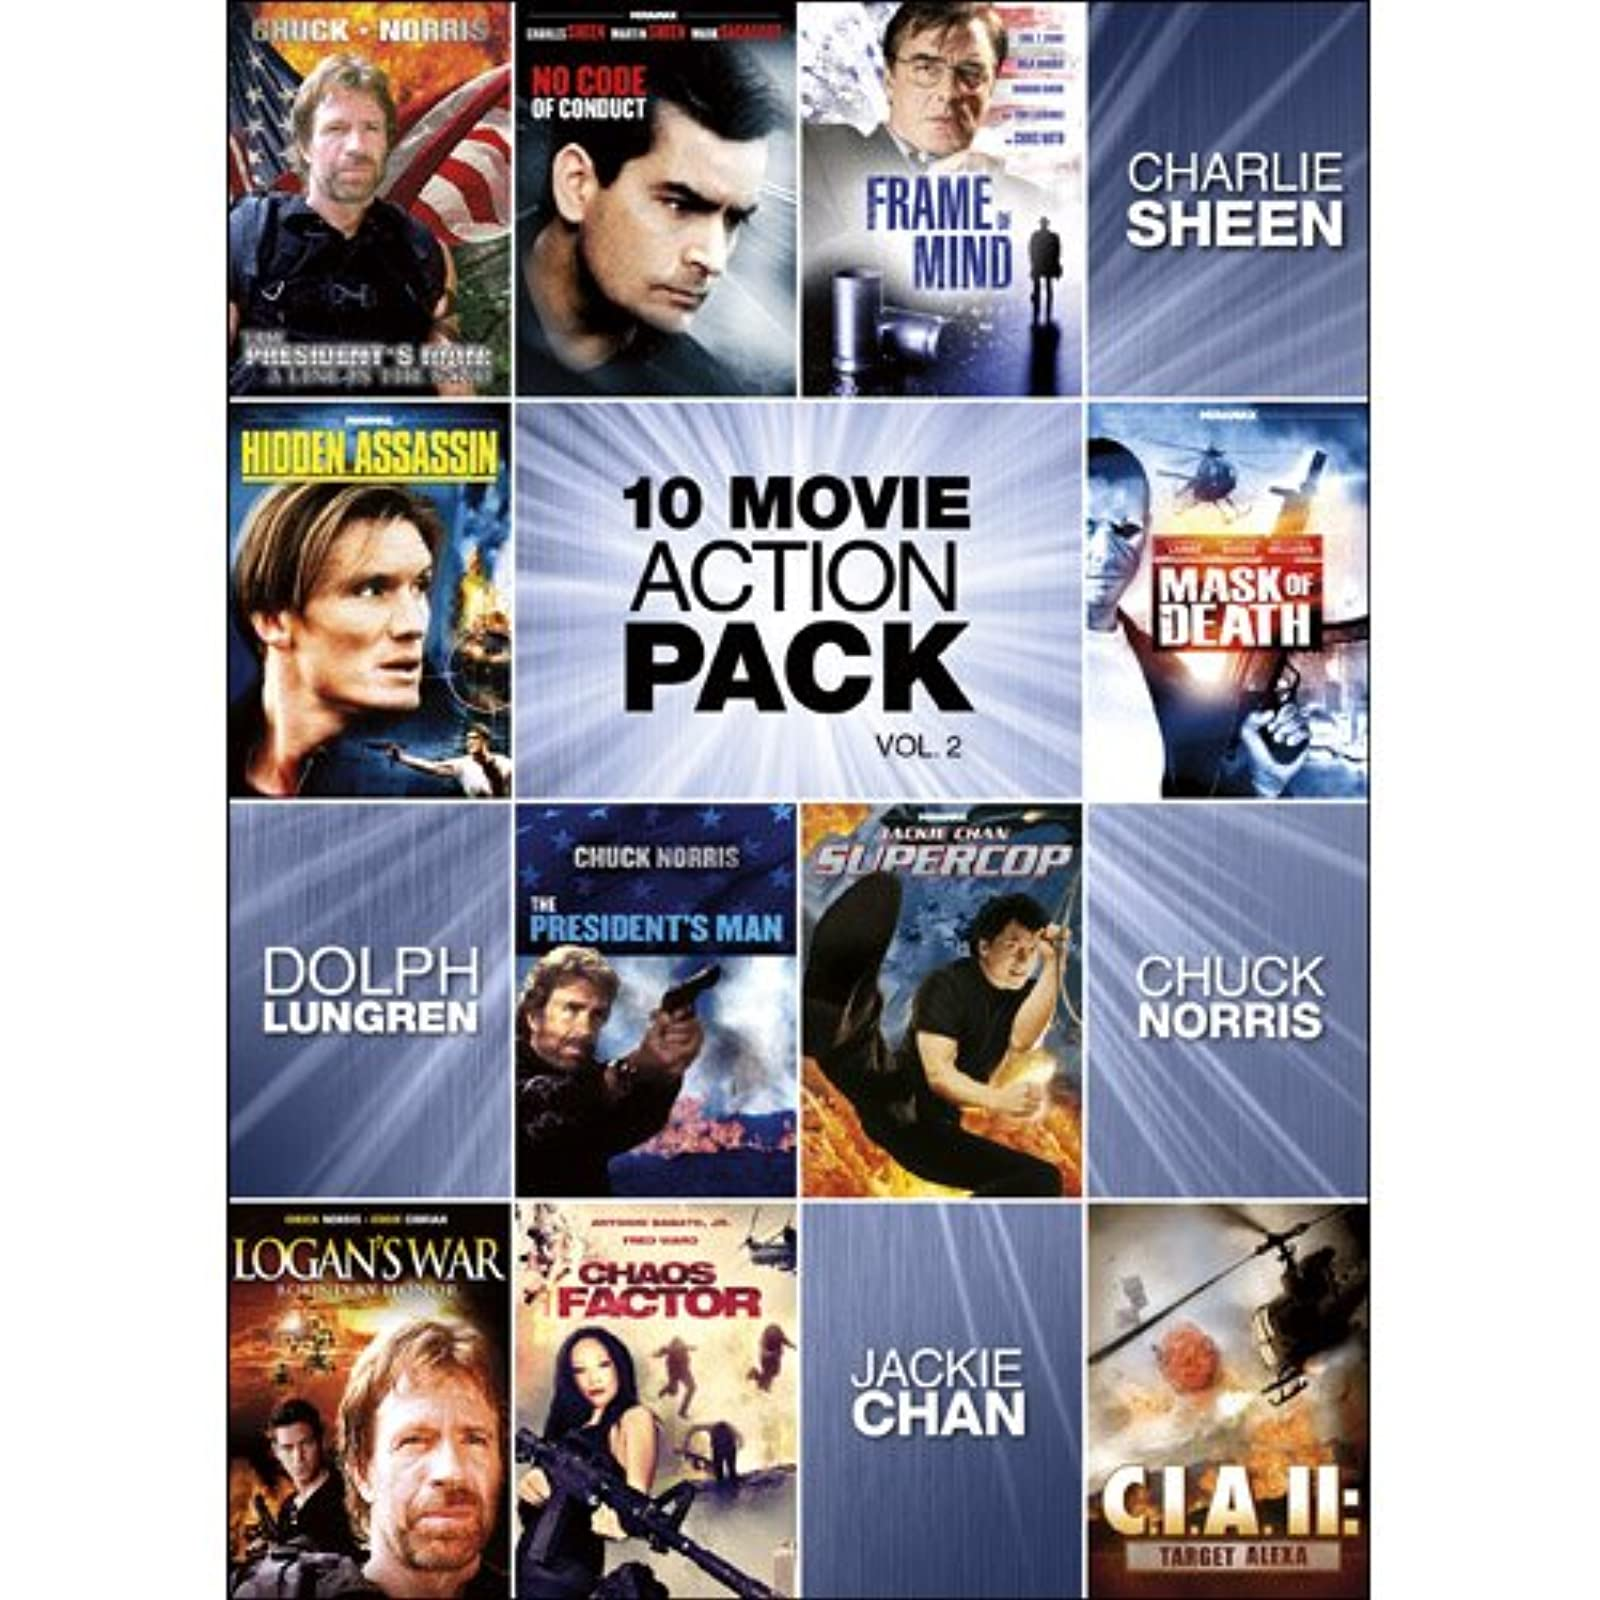 10-MOVIE Action Pack V.2 On DVD With Jackie Chan